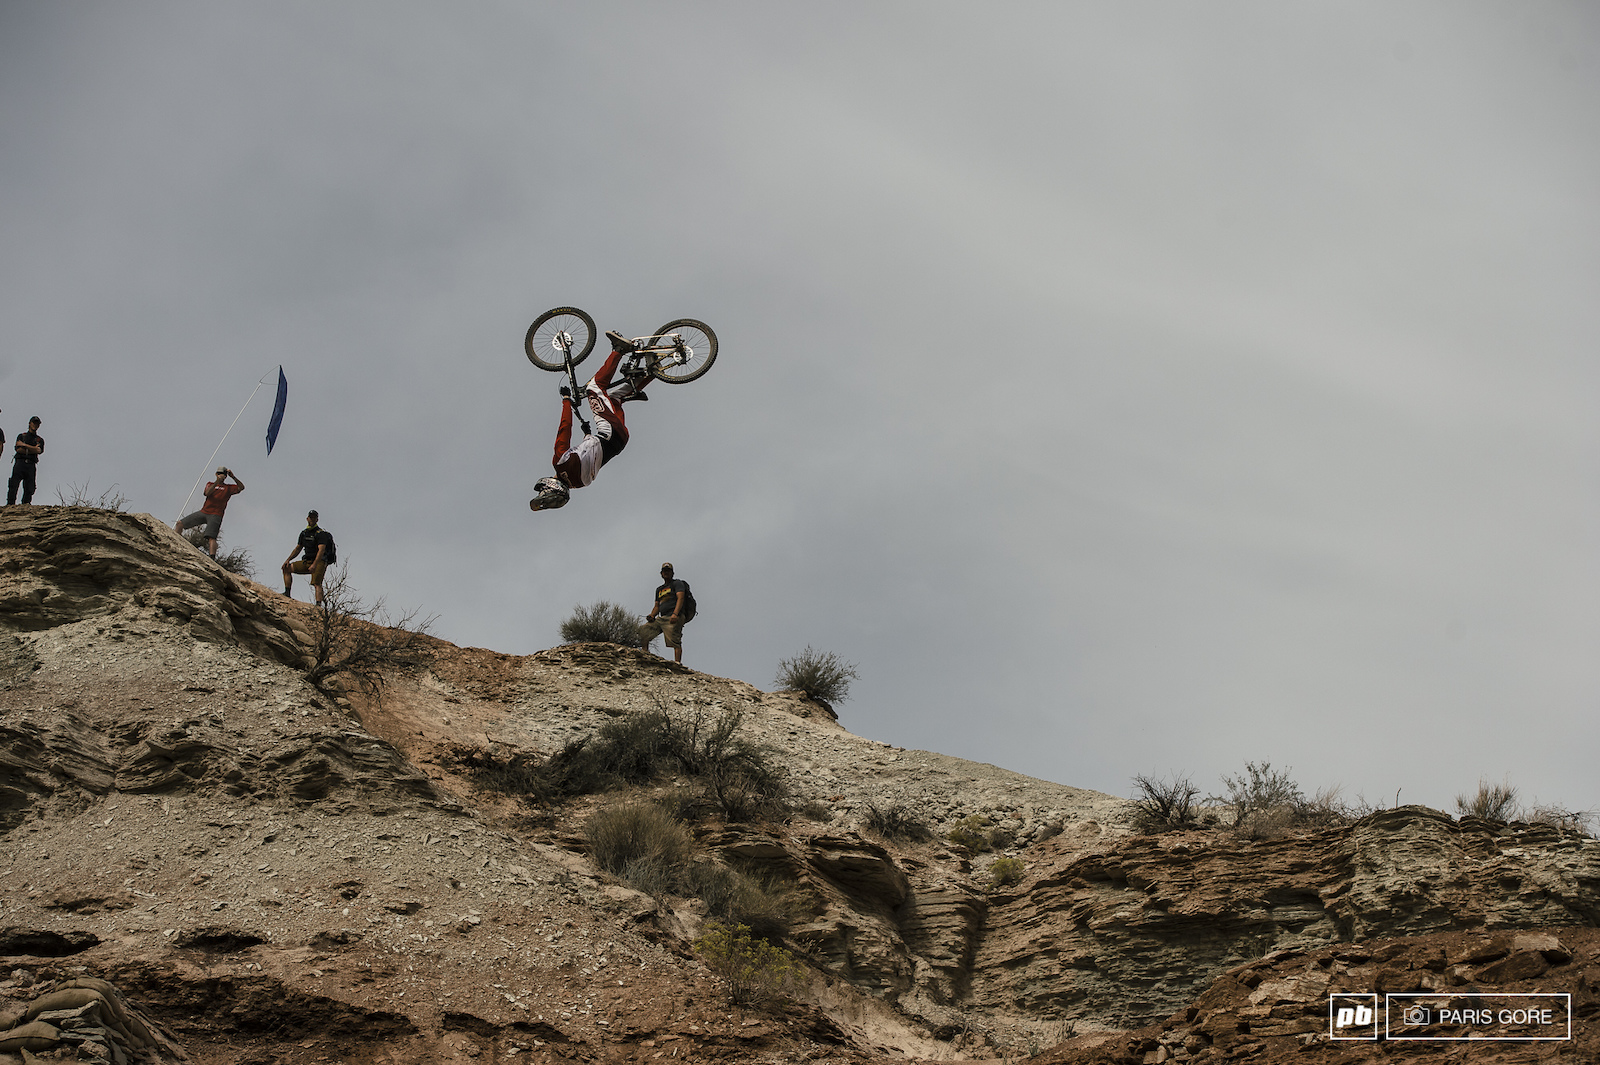 Brandon Semenuk straight flipping a huge stepdown on the upper portion of the course.